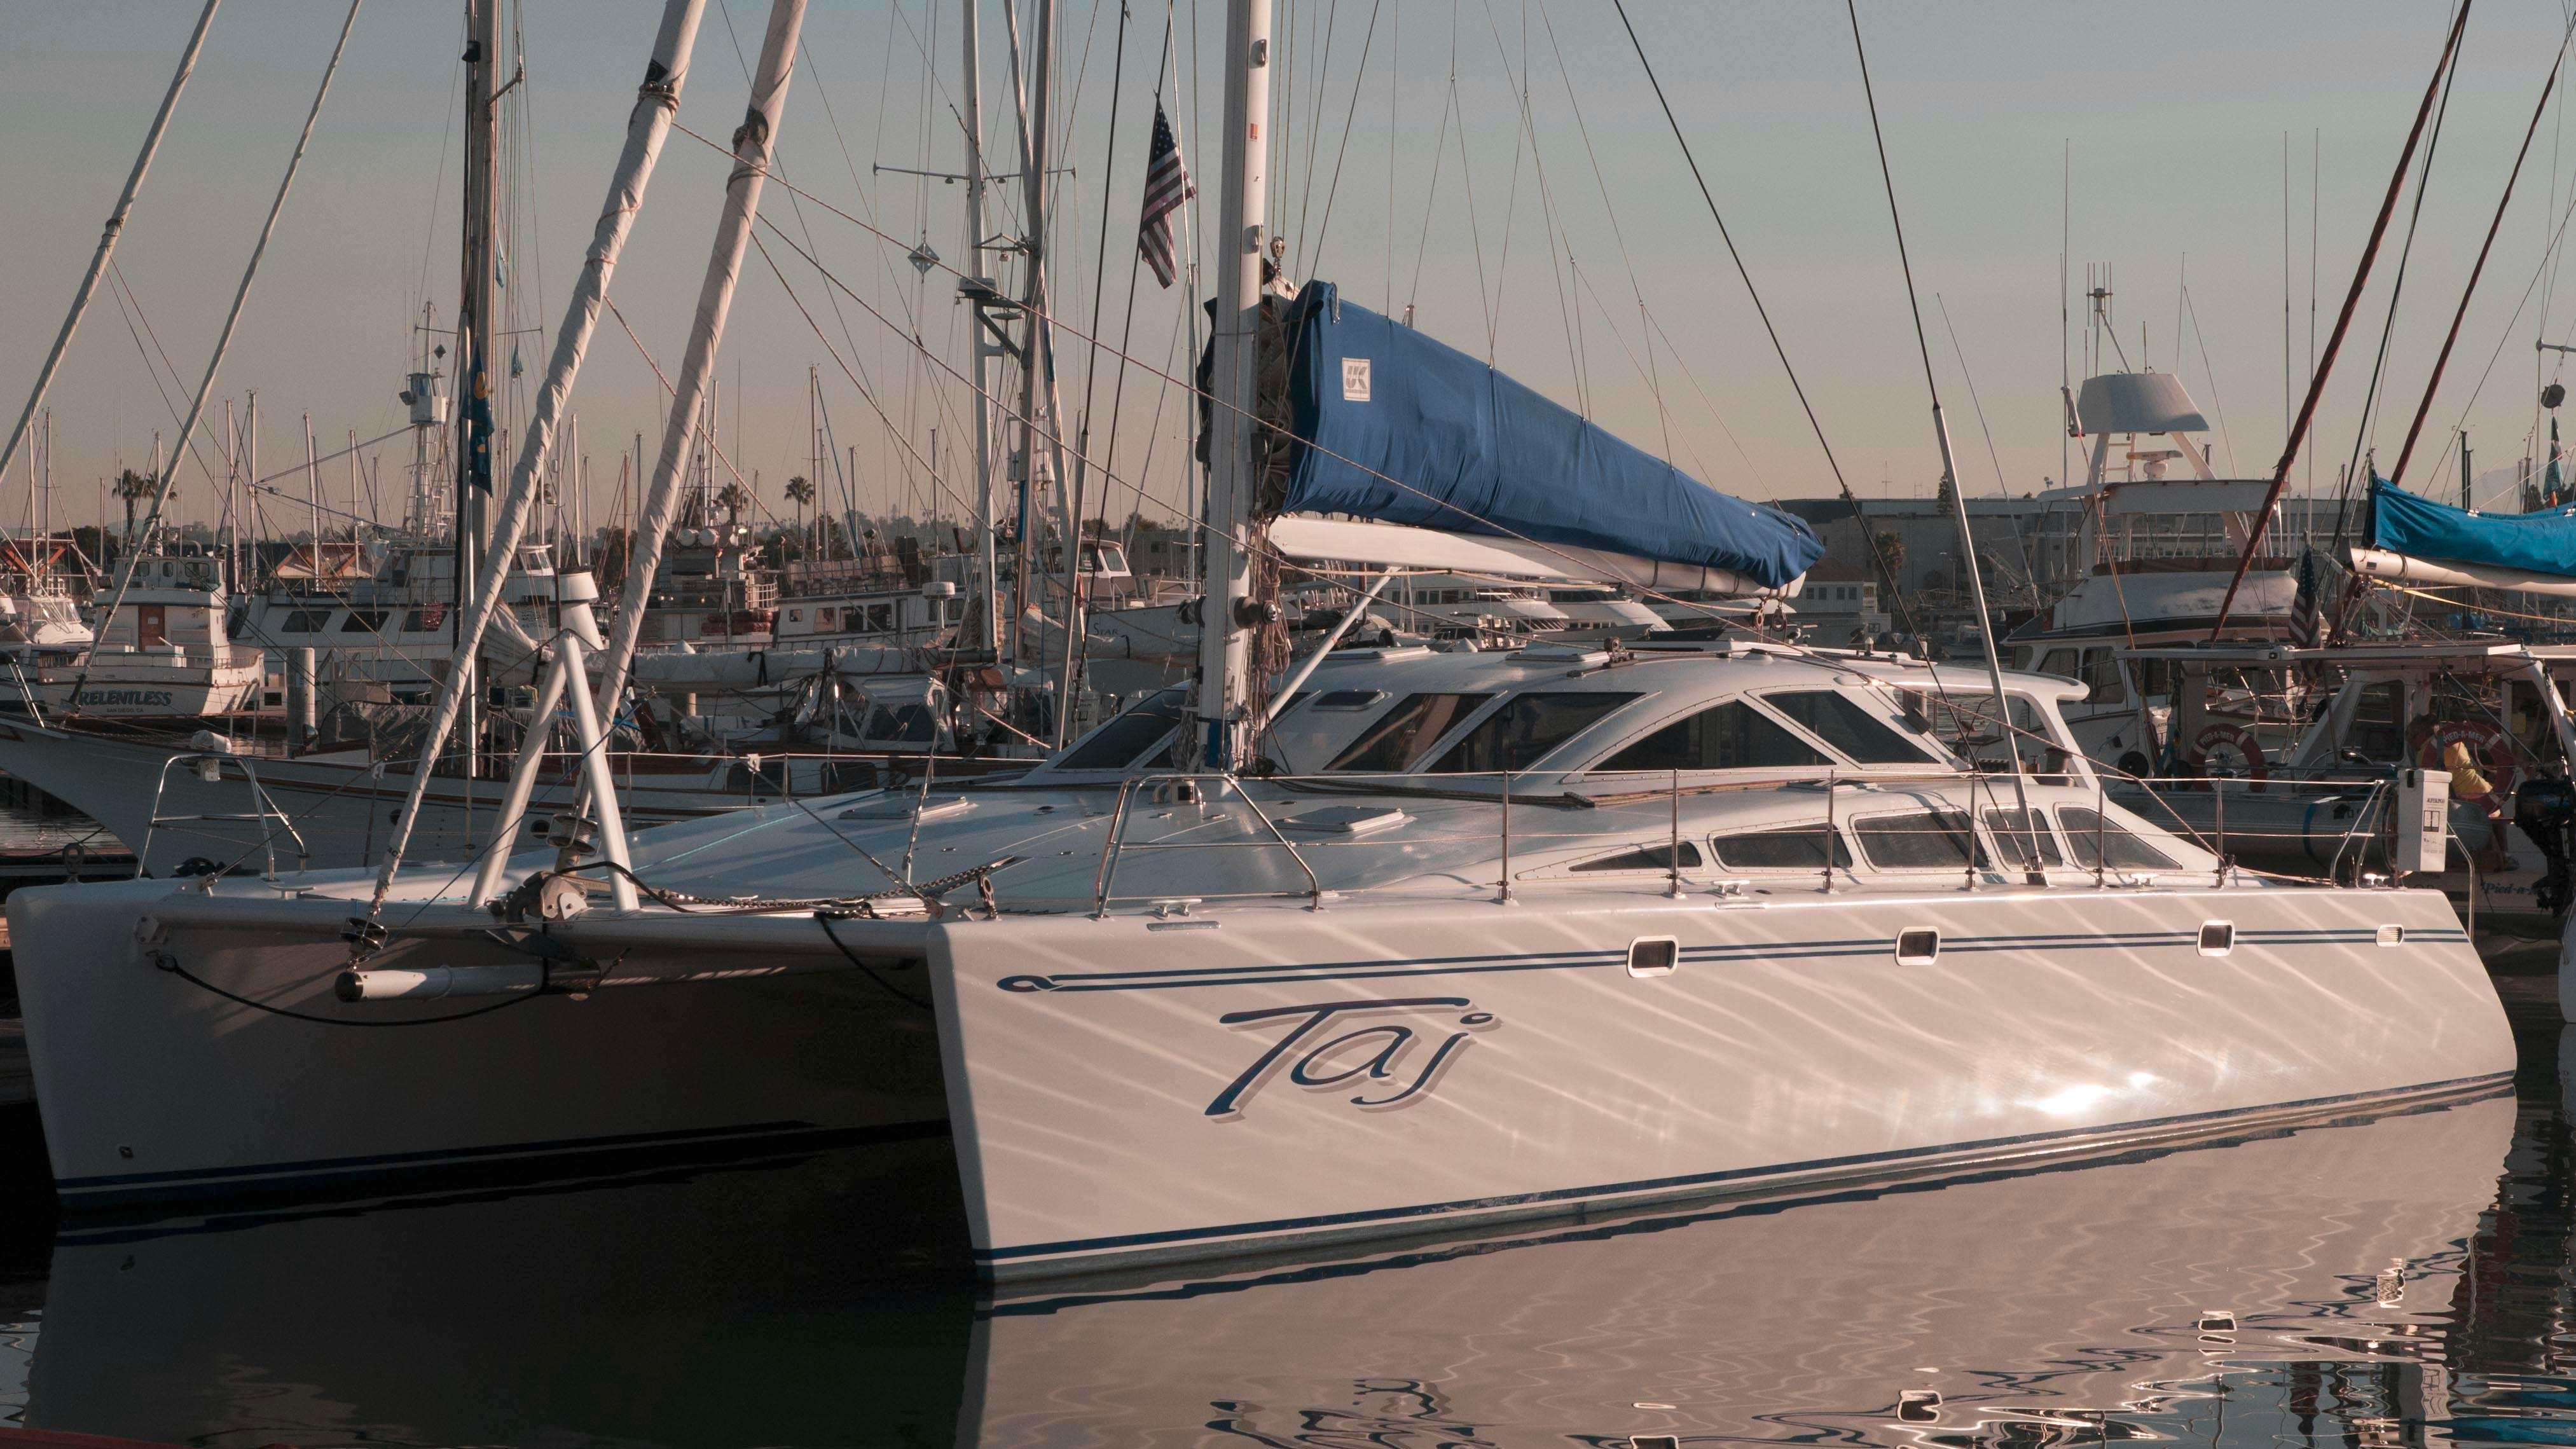 Catamarans For Sale All Used 4 Way Switch Grainger